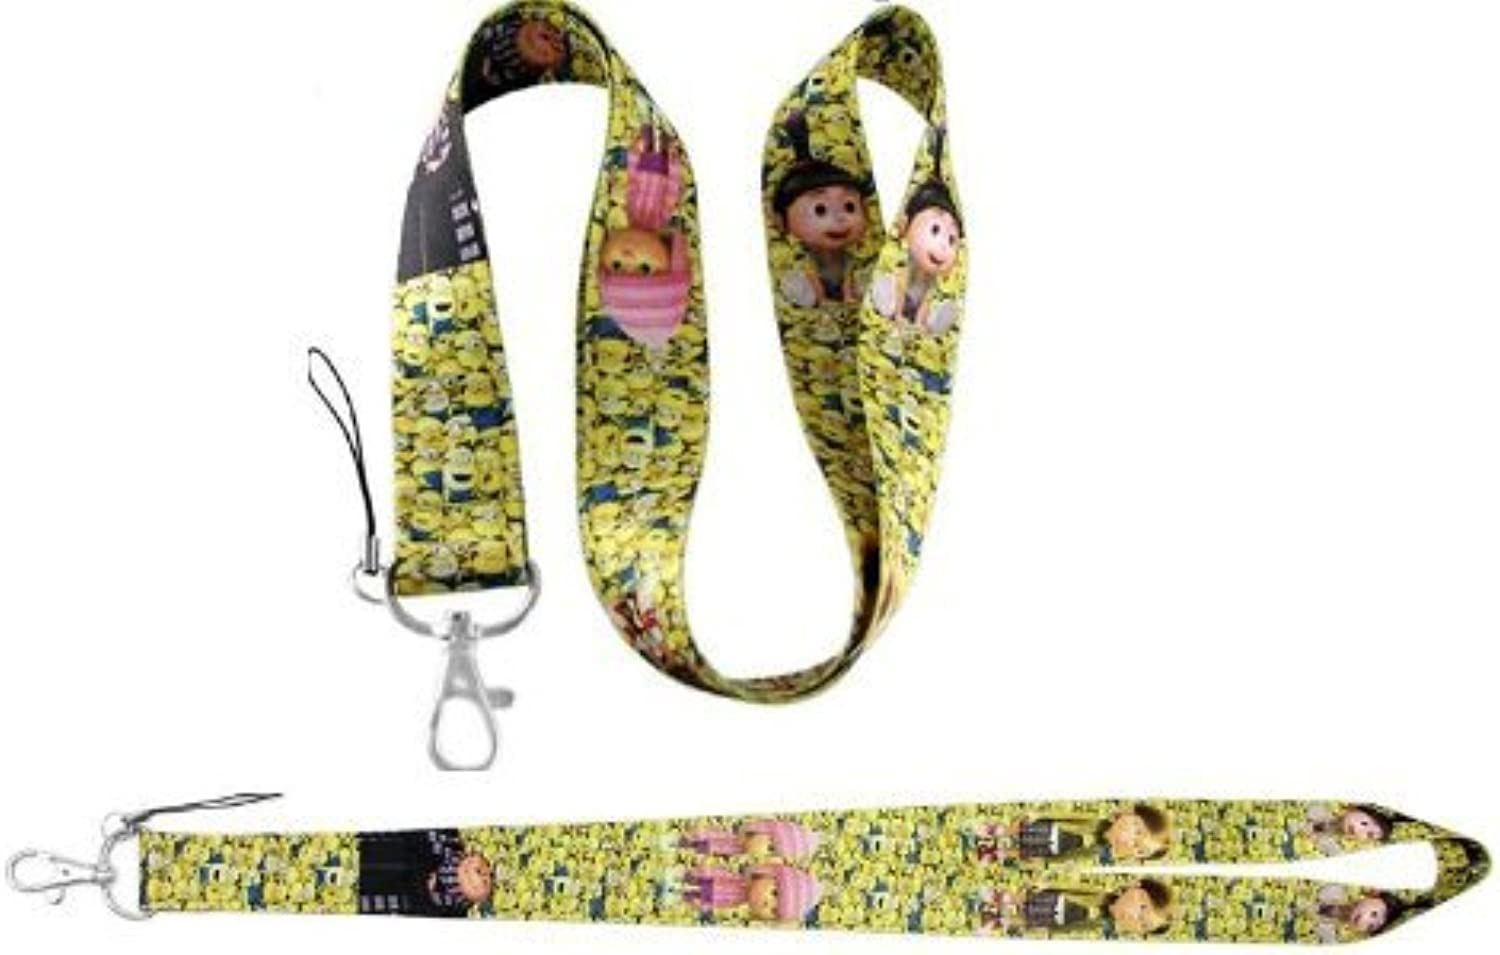 Despicable Me Minions Lanyard Lanyard Lanyard keychain Holder - Gelb by cheapest Elect-lanyard B00F8KSOUK | Helle Farben